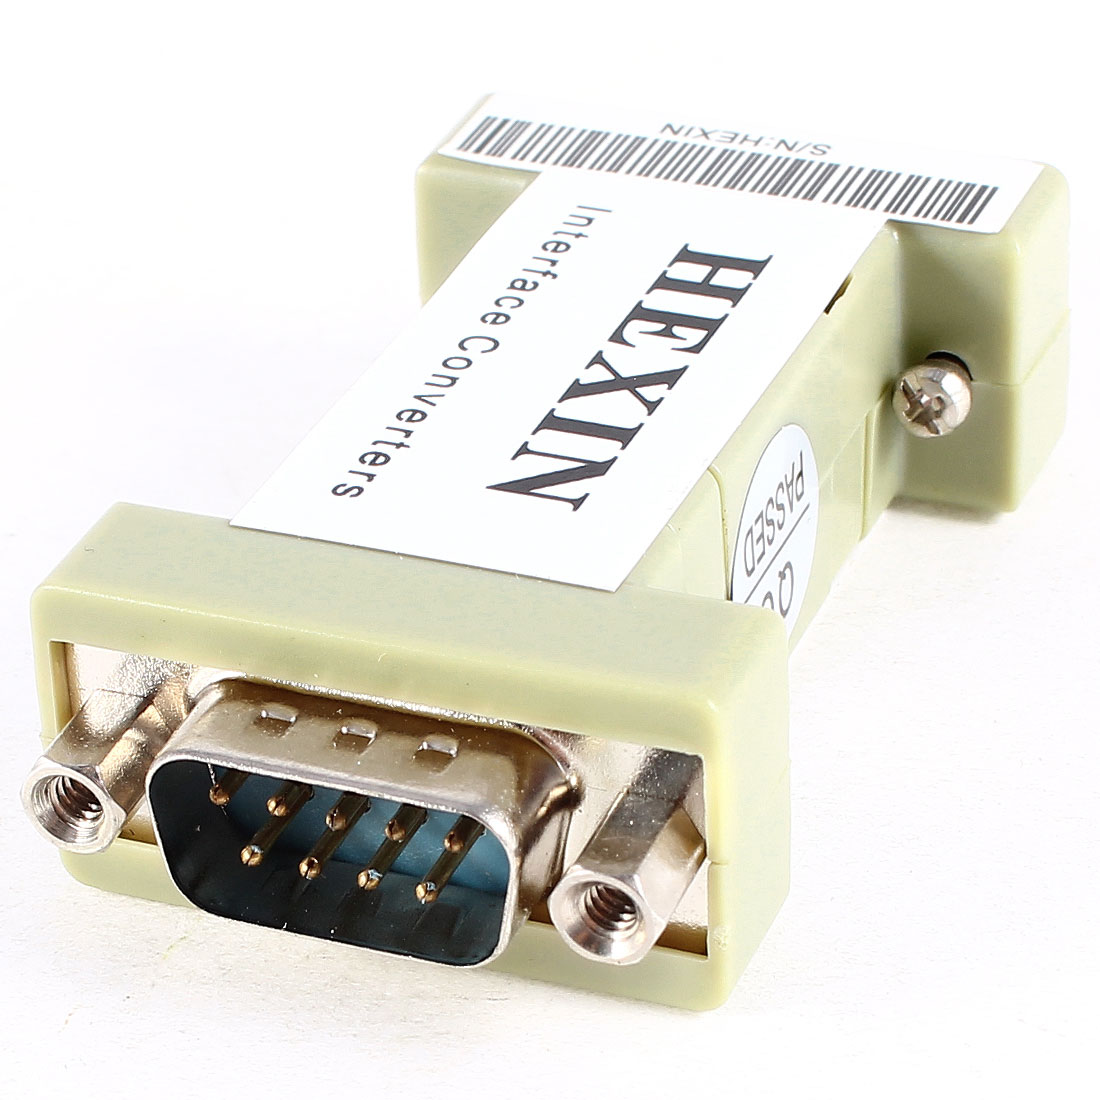 DB9 RS232 Male to Female Surge Protection 3 Wire Data Transmitter Adapter